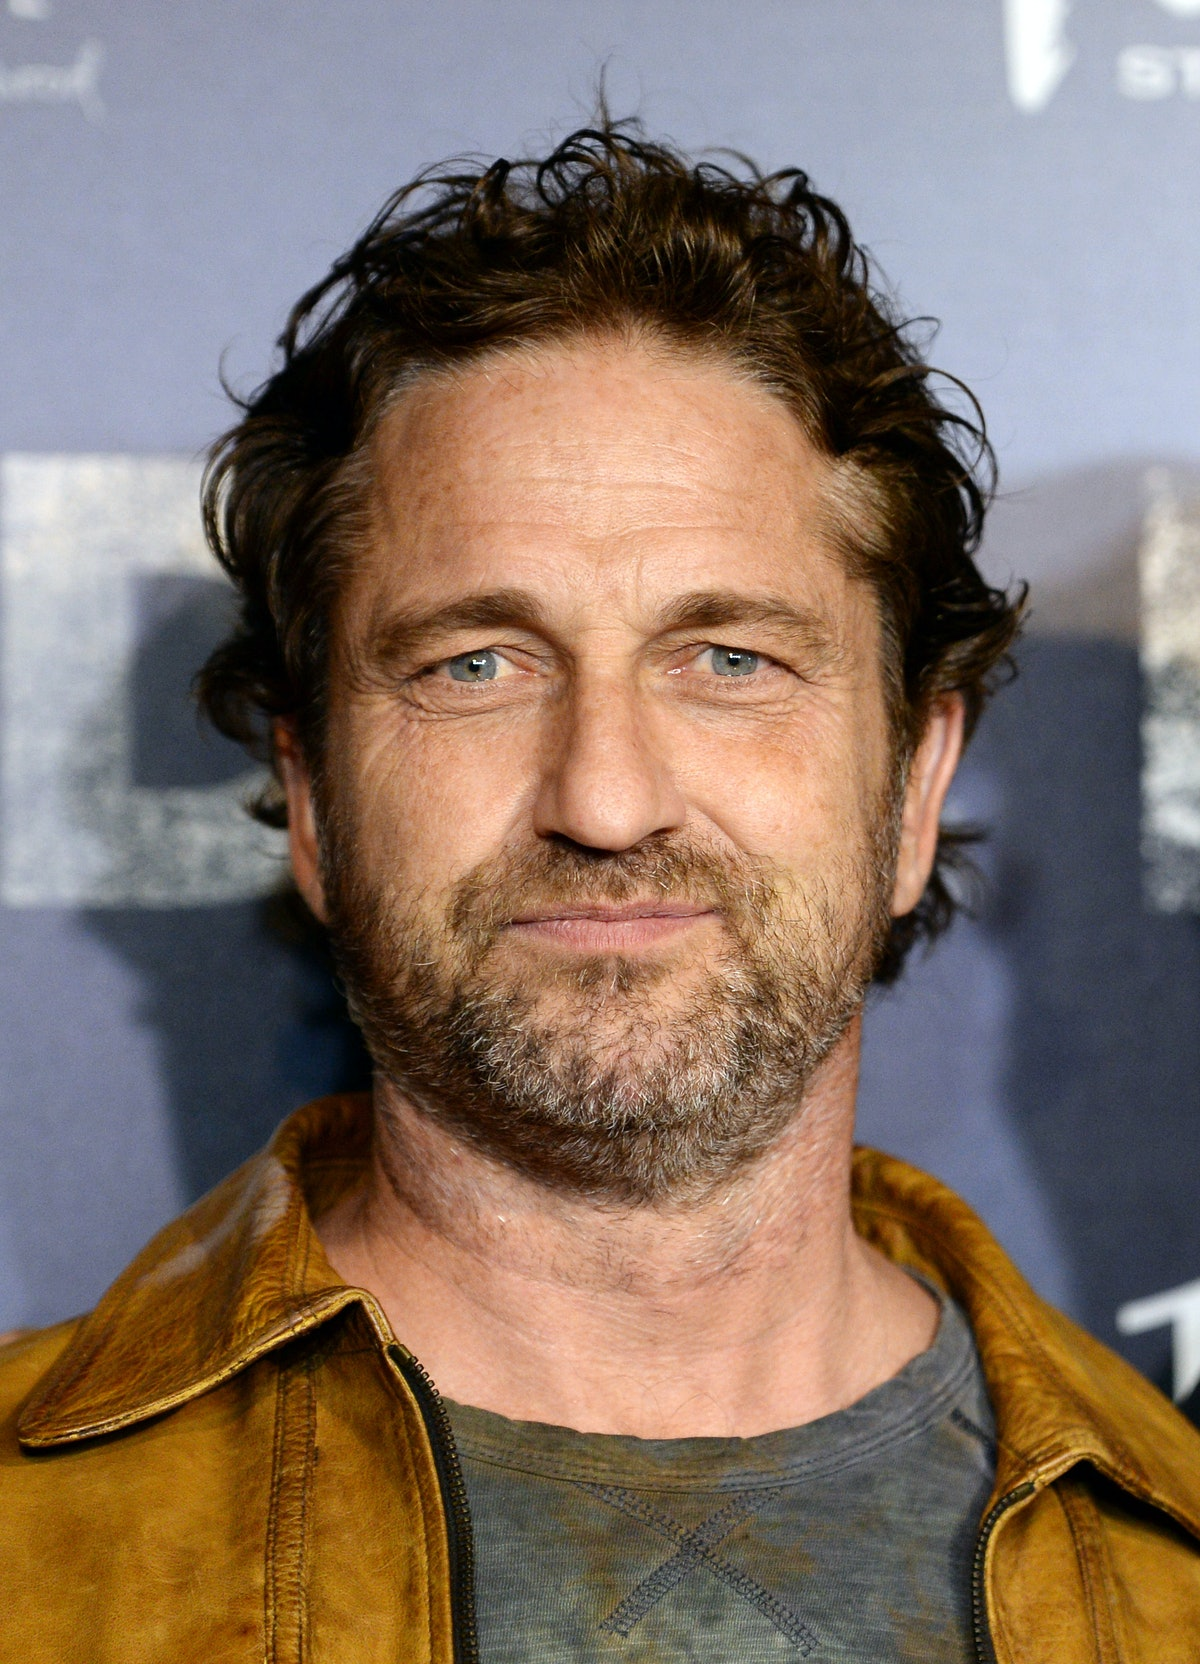 """WEST HOLLYWOOD, CALIFORNIA - FEBRUARY 27: Actor Gerard Butler arrives at the premiere of """"Burden"""" at the Silver Screen Theater at the Pacific Design Center on February 27, 2020 in West Hollywood, California. (Photo by Amanda Edwards/Getty Images)"""